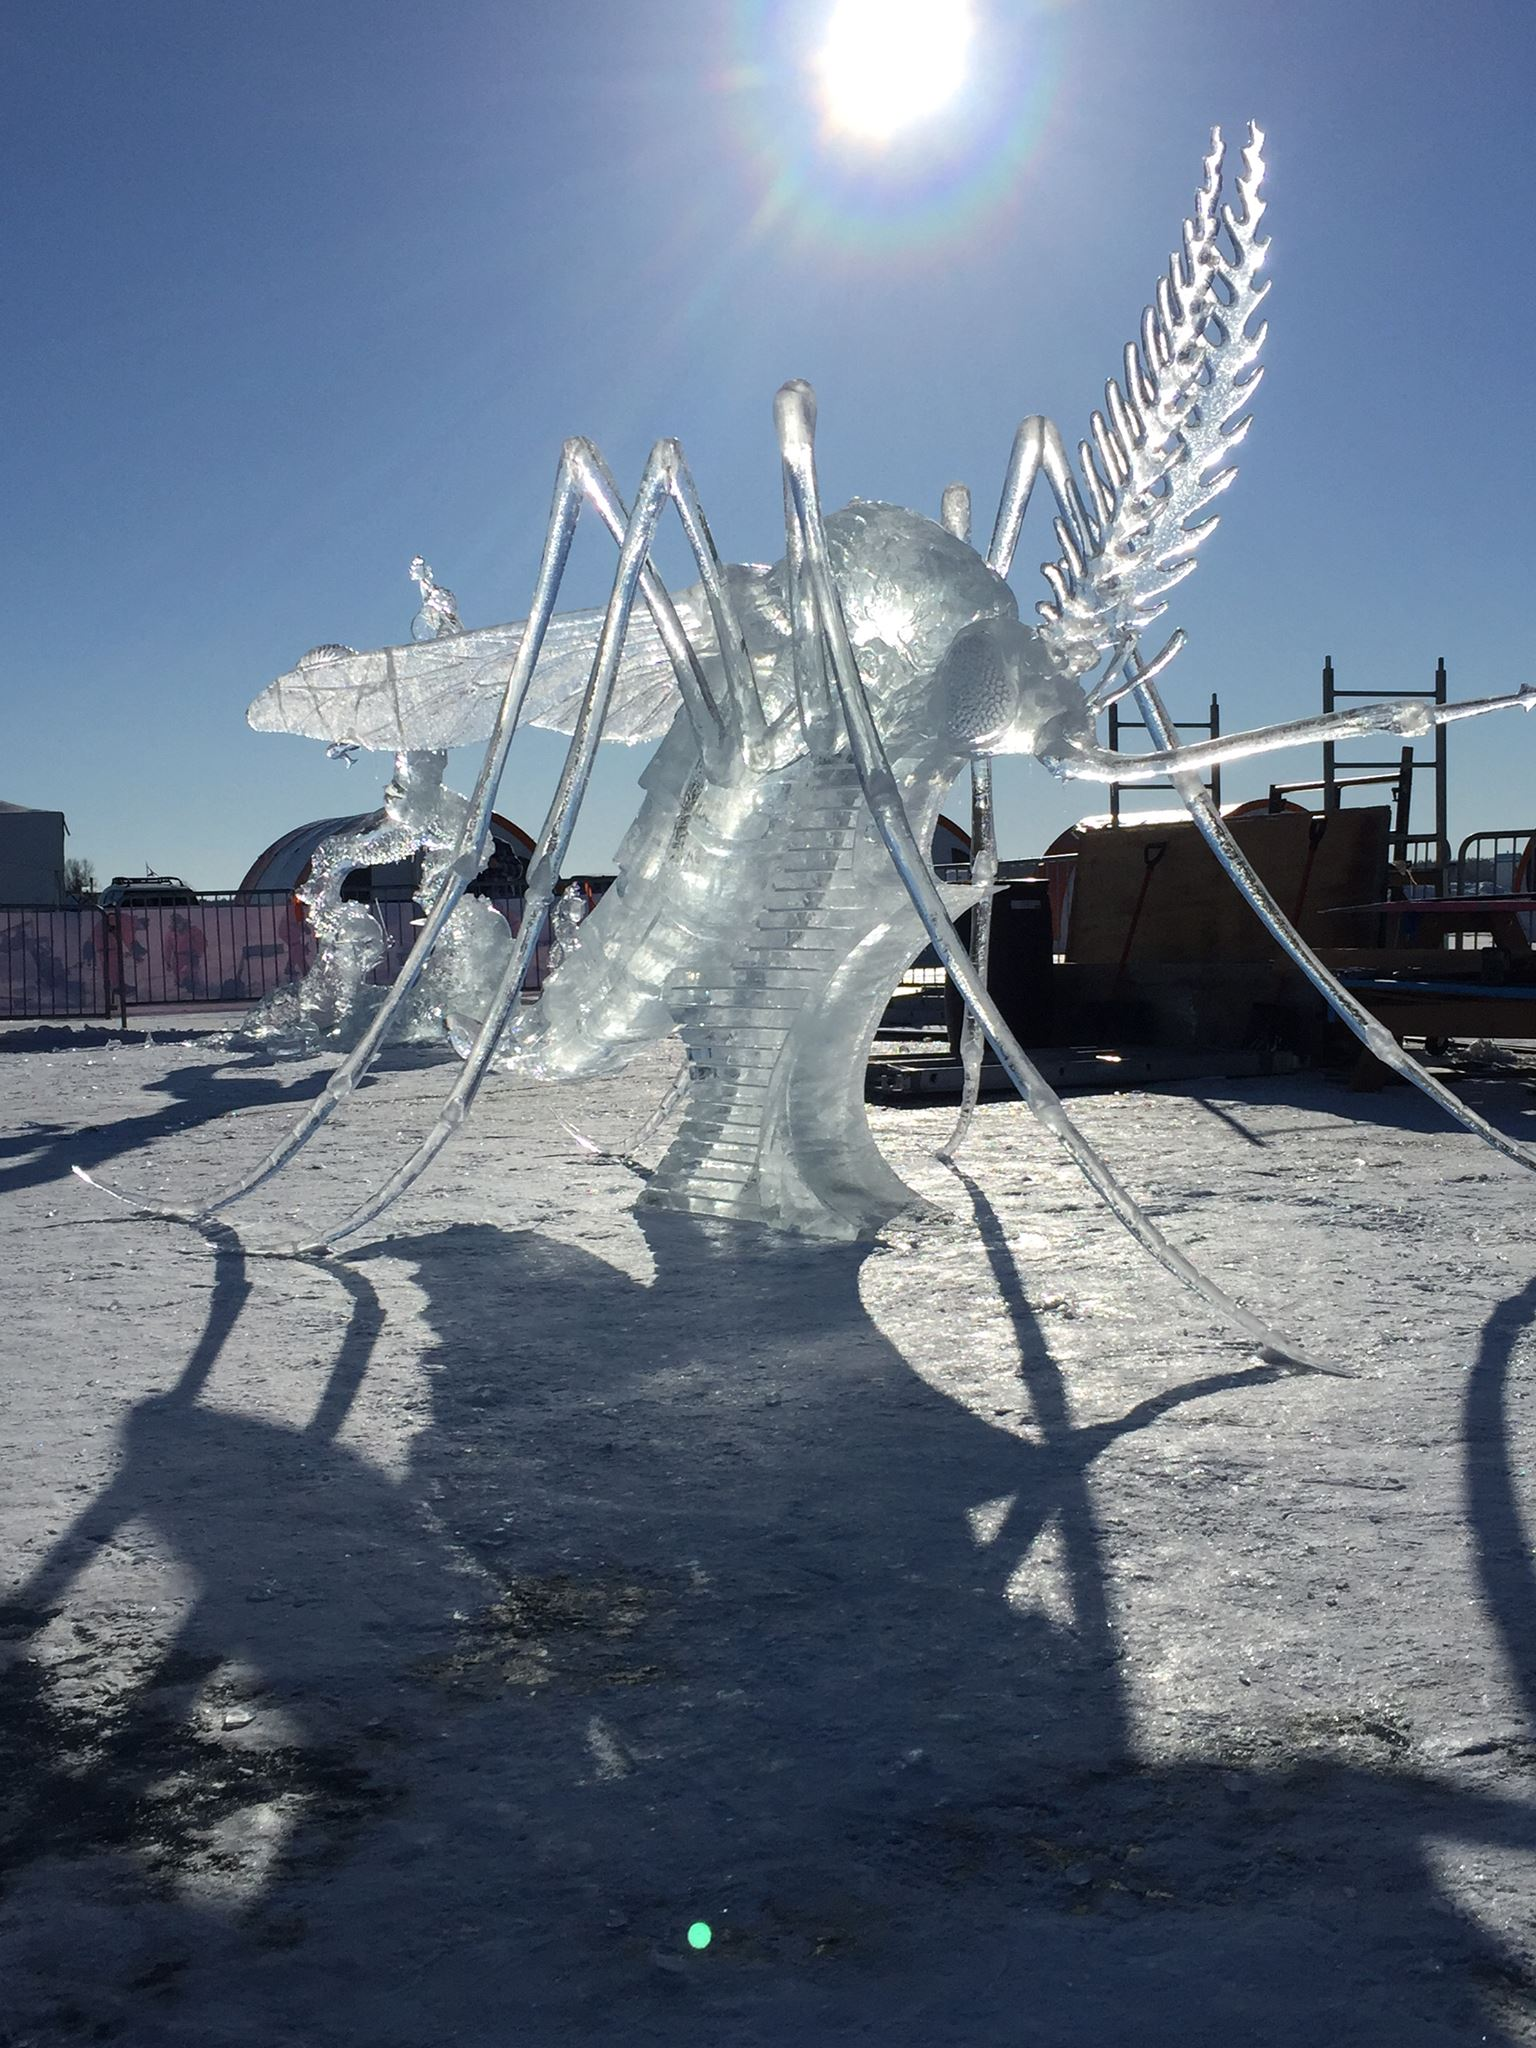 The Winning Entry at the Long John Jamboree's Ice Carving Competition in 2015